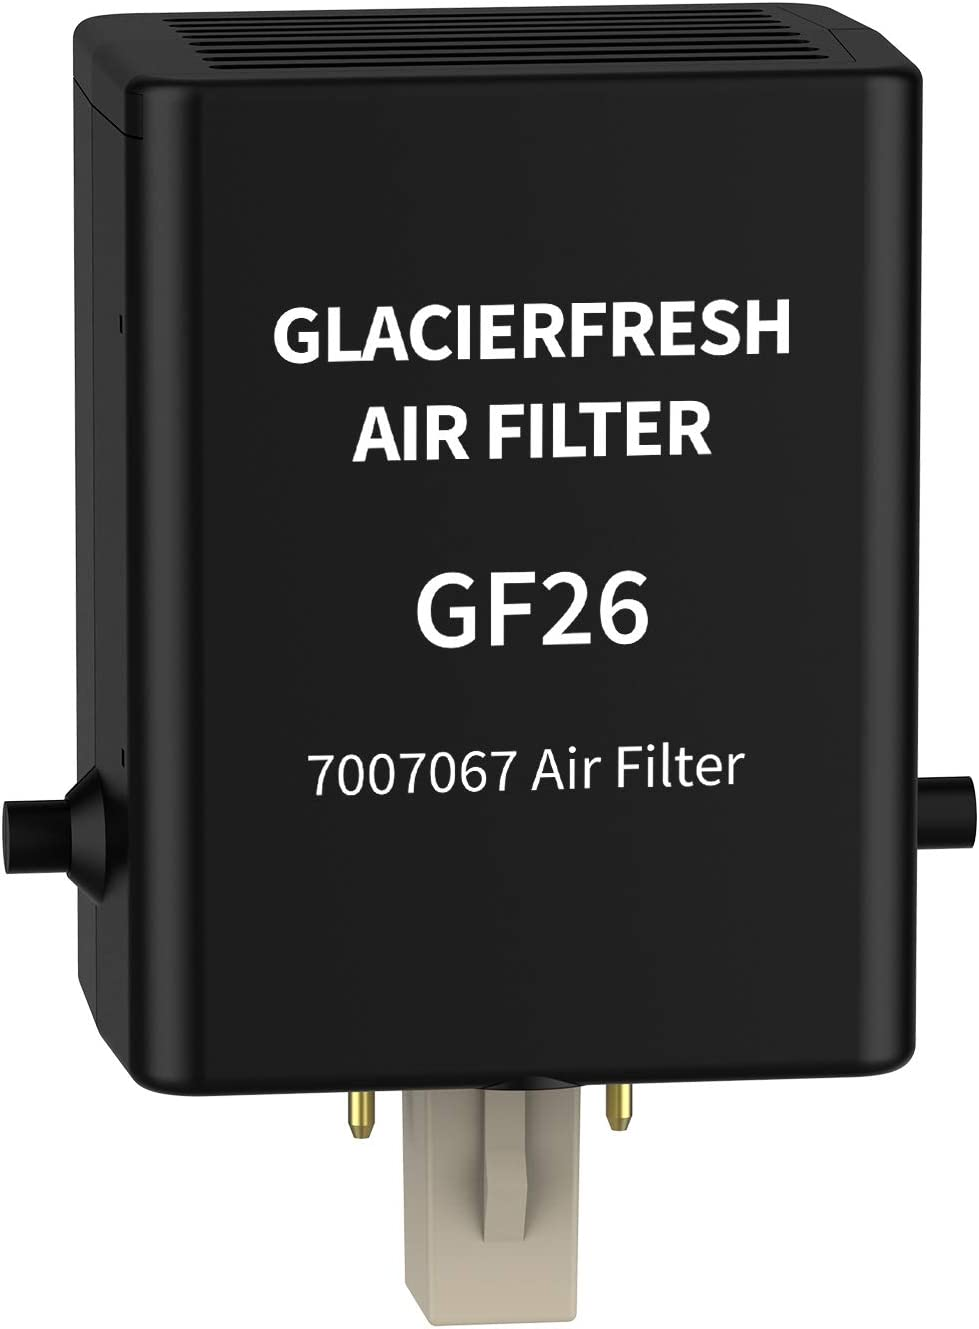 GLACIER FRESH 7007067 Air Purification Cartridge, Air Filter Replacement For Refrigerator 7007076 Air Filter (1 Pack)